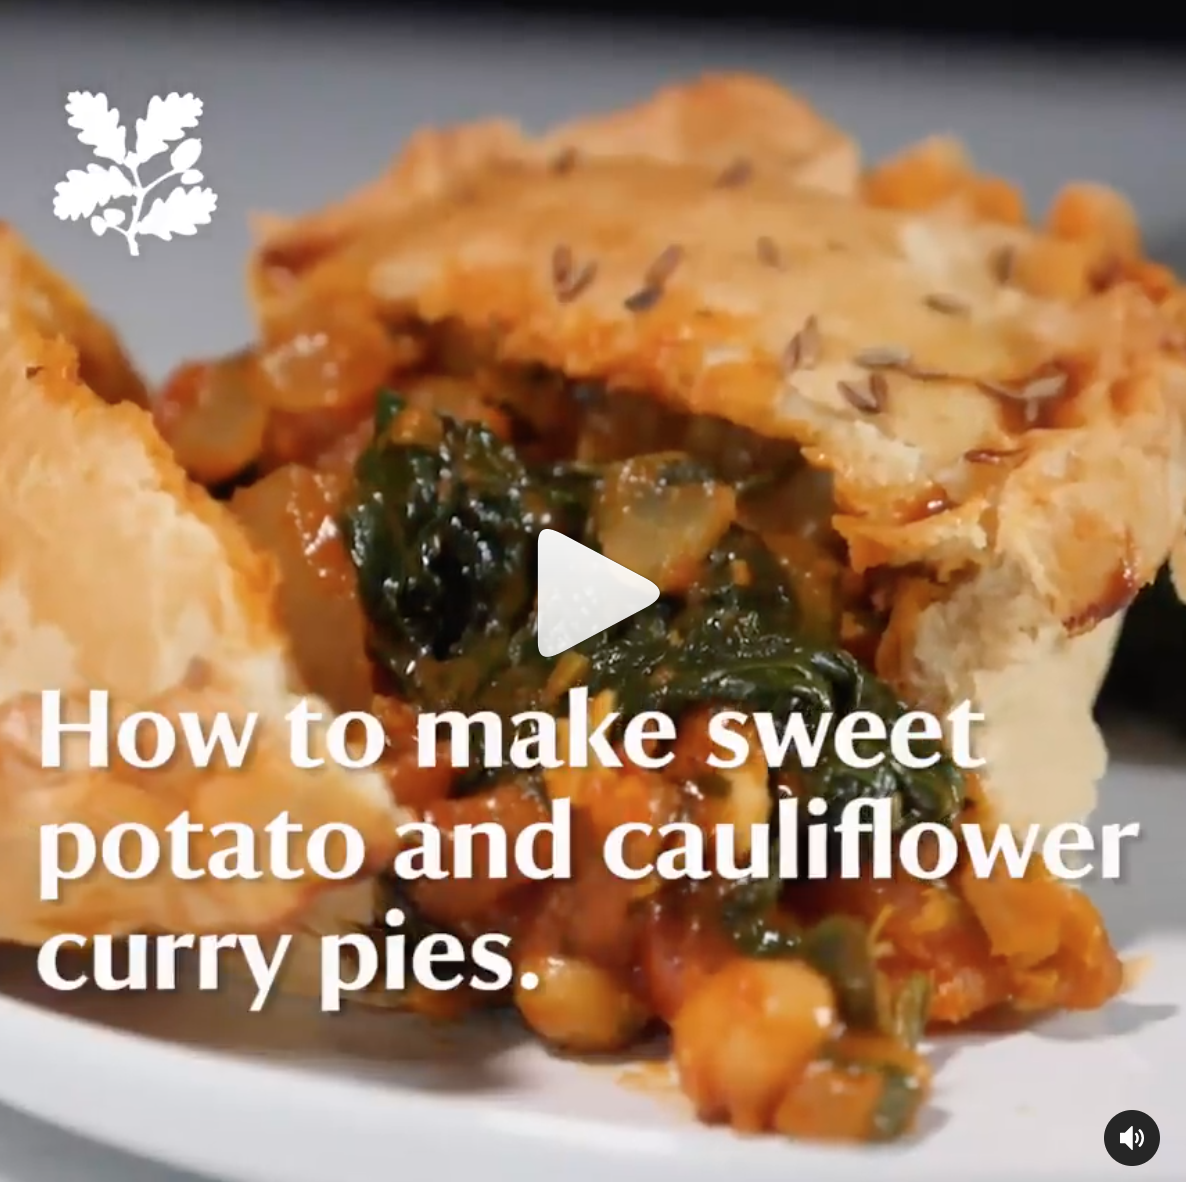 How-To Recipes on the National Trust Instagram